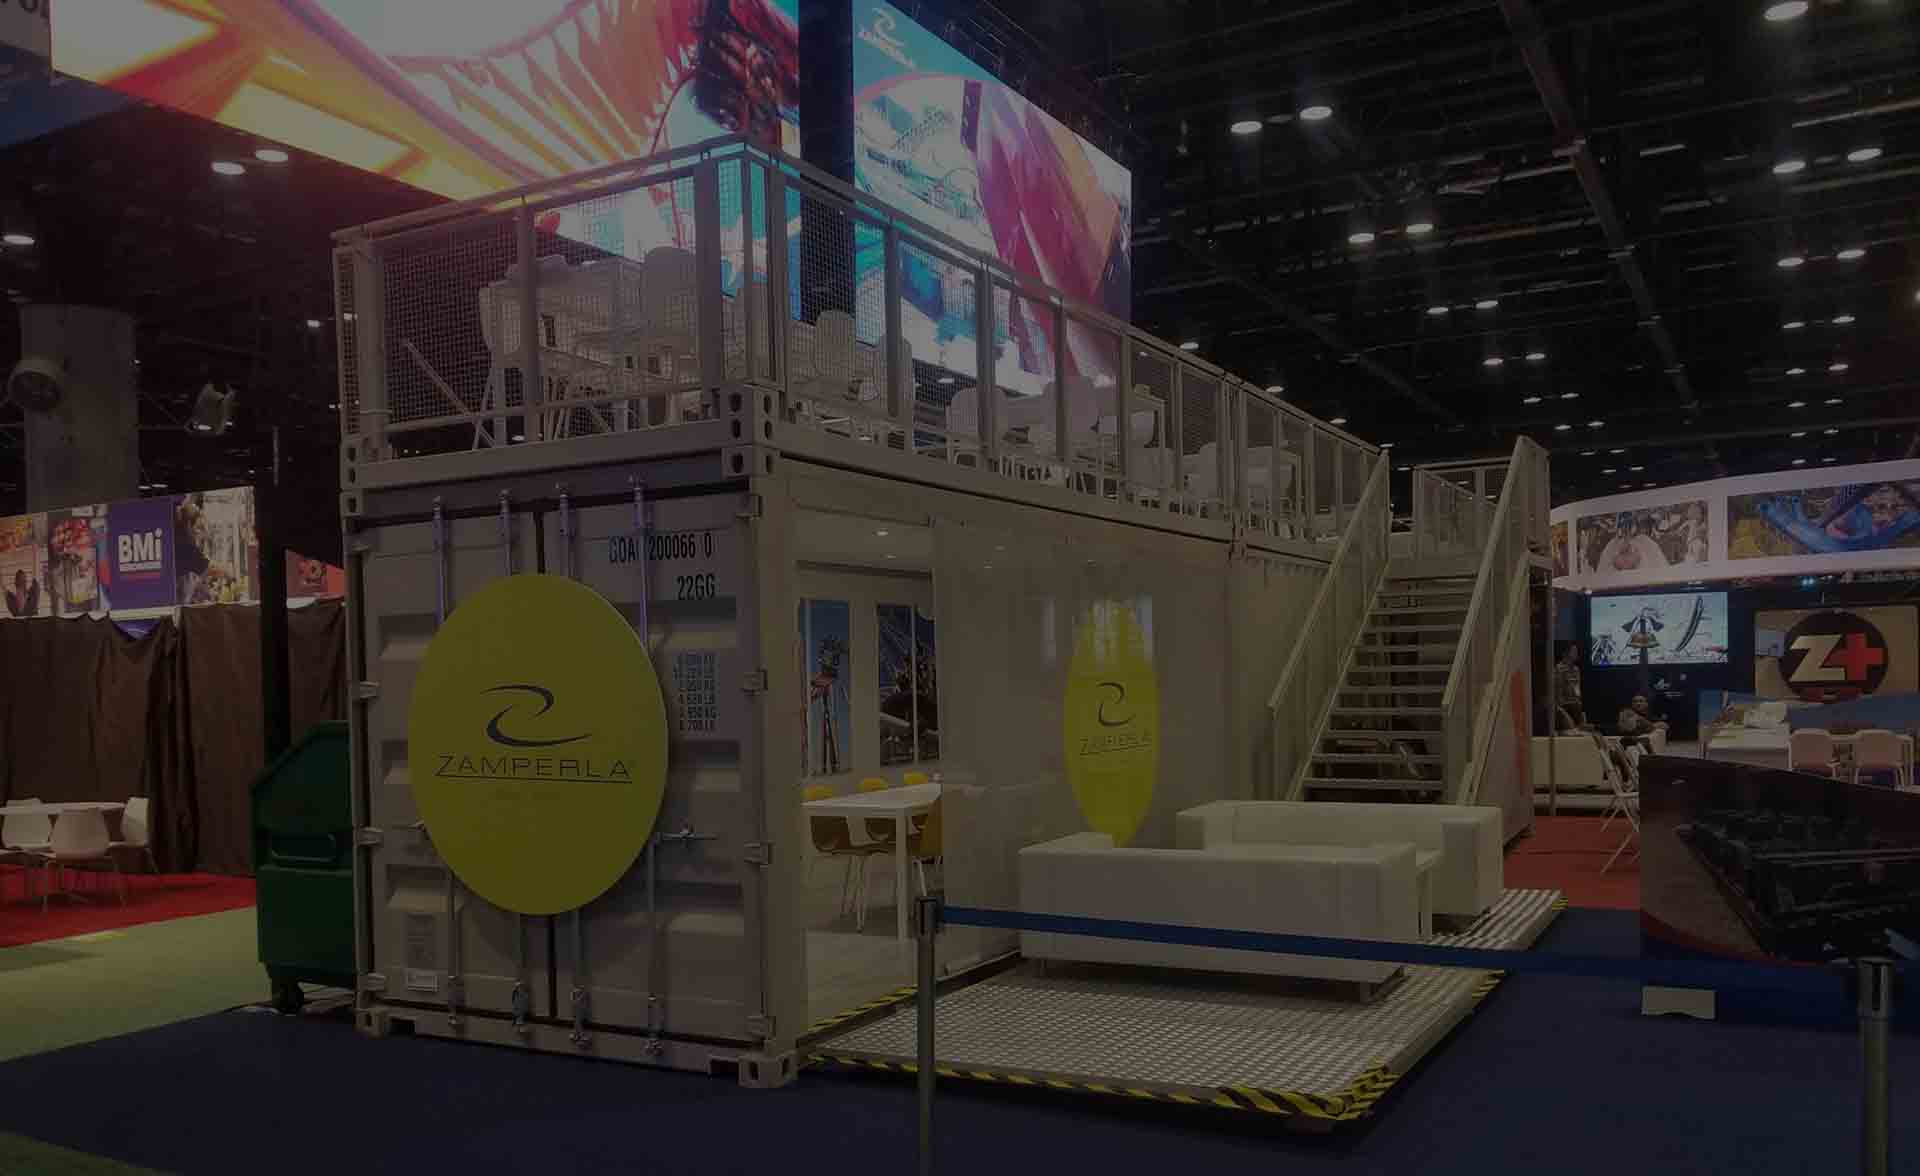 Great Booth Design: Simplicity & Clarity